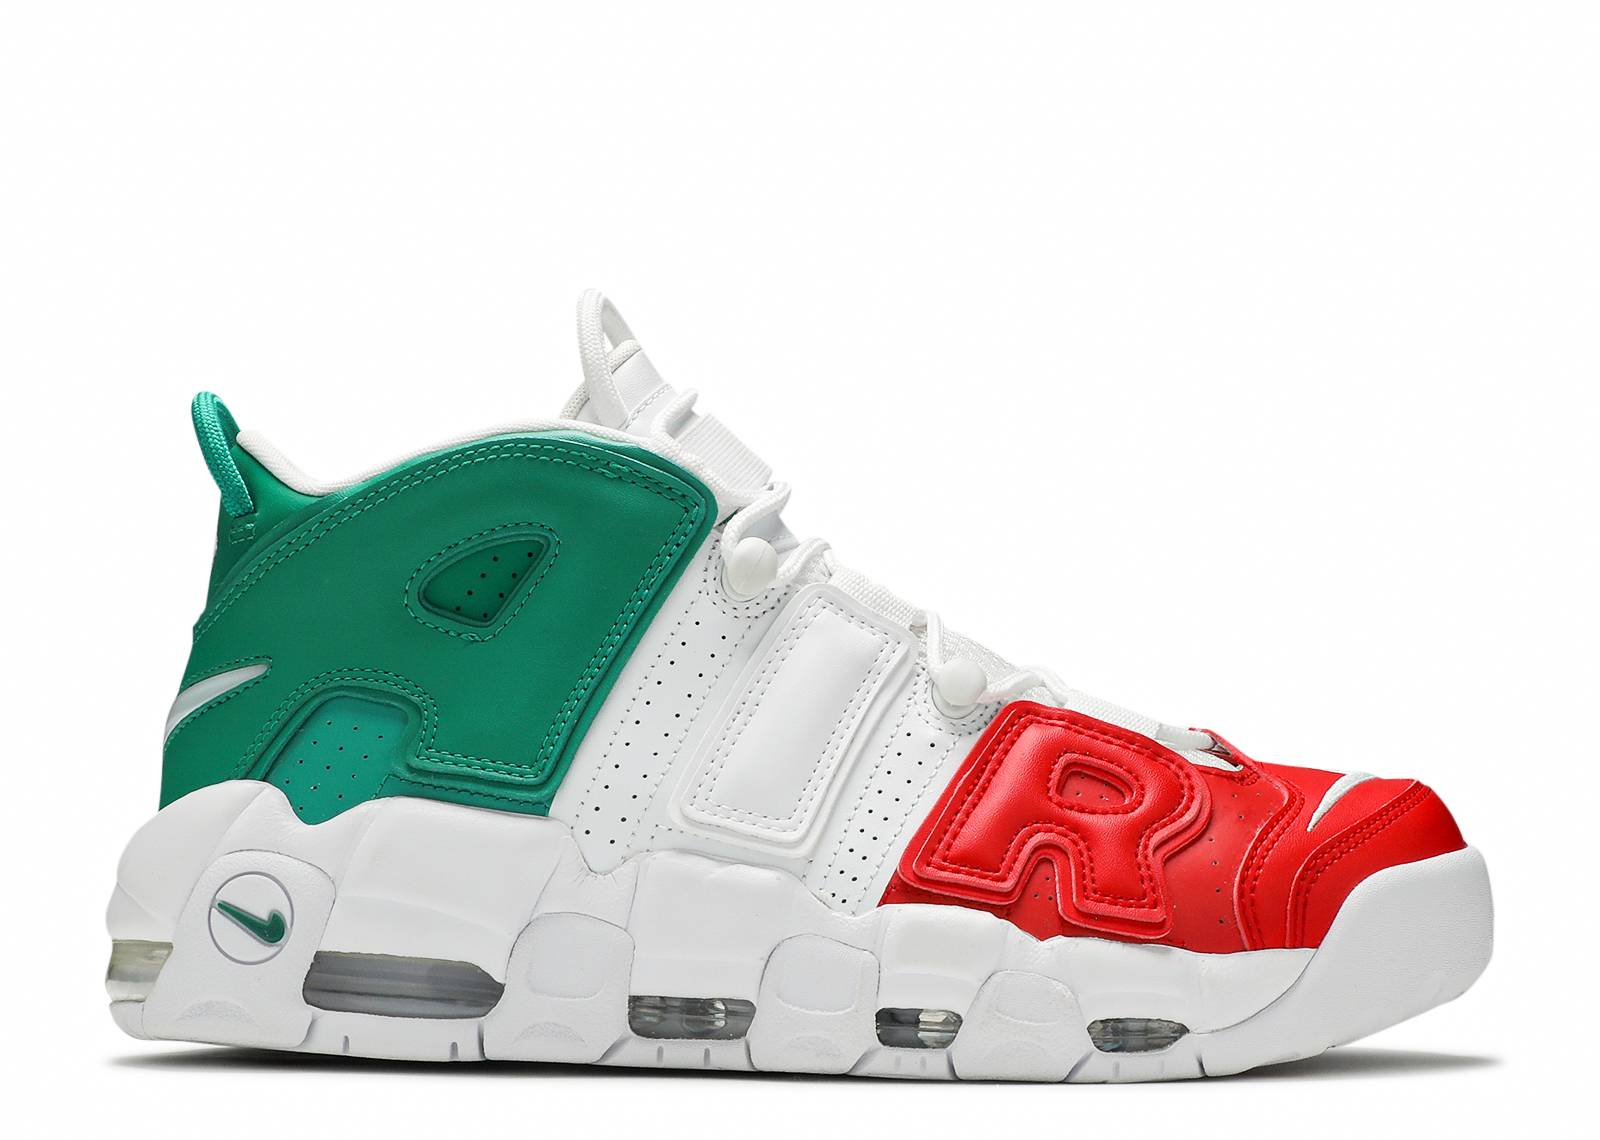 50c18789ea Air More Uptempo '96 Italy Qs - Nike - av3811 600 - university red ...